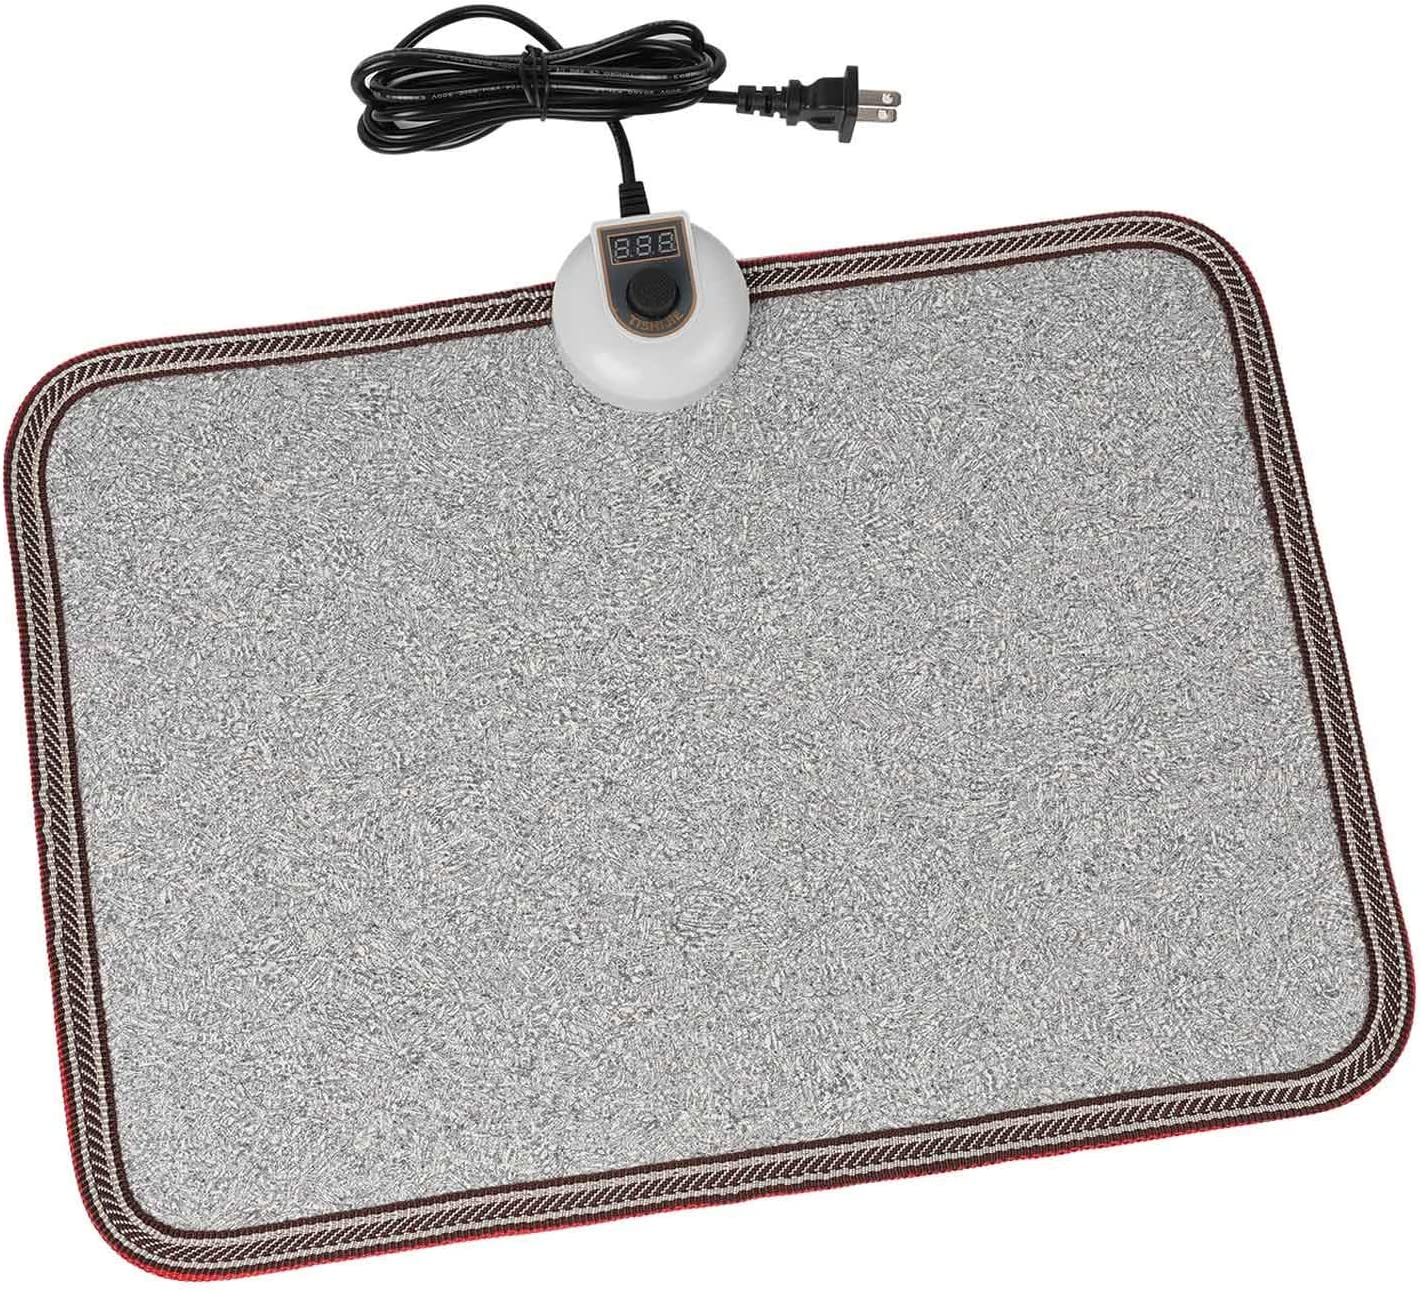 TISHIJIE Electric Heated Foot Warmer Mat - Toes Warming Heater, Heated Floor Mats Under Desk for Office and Home (Stone Grain)